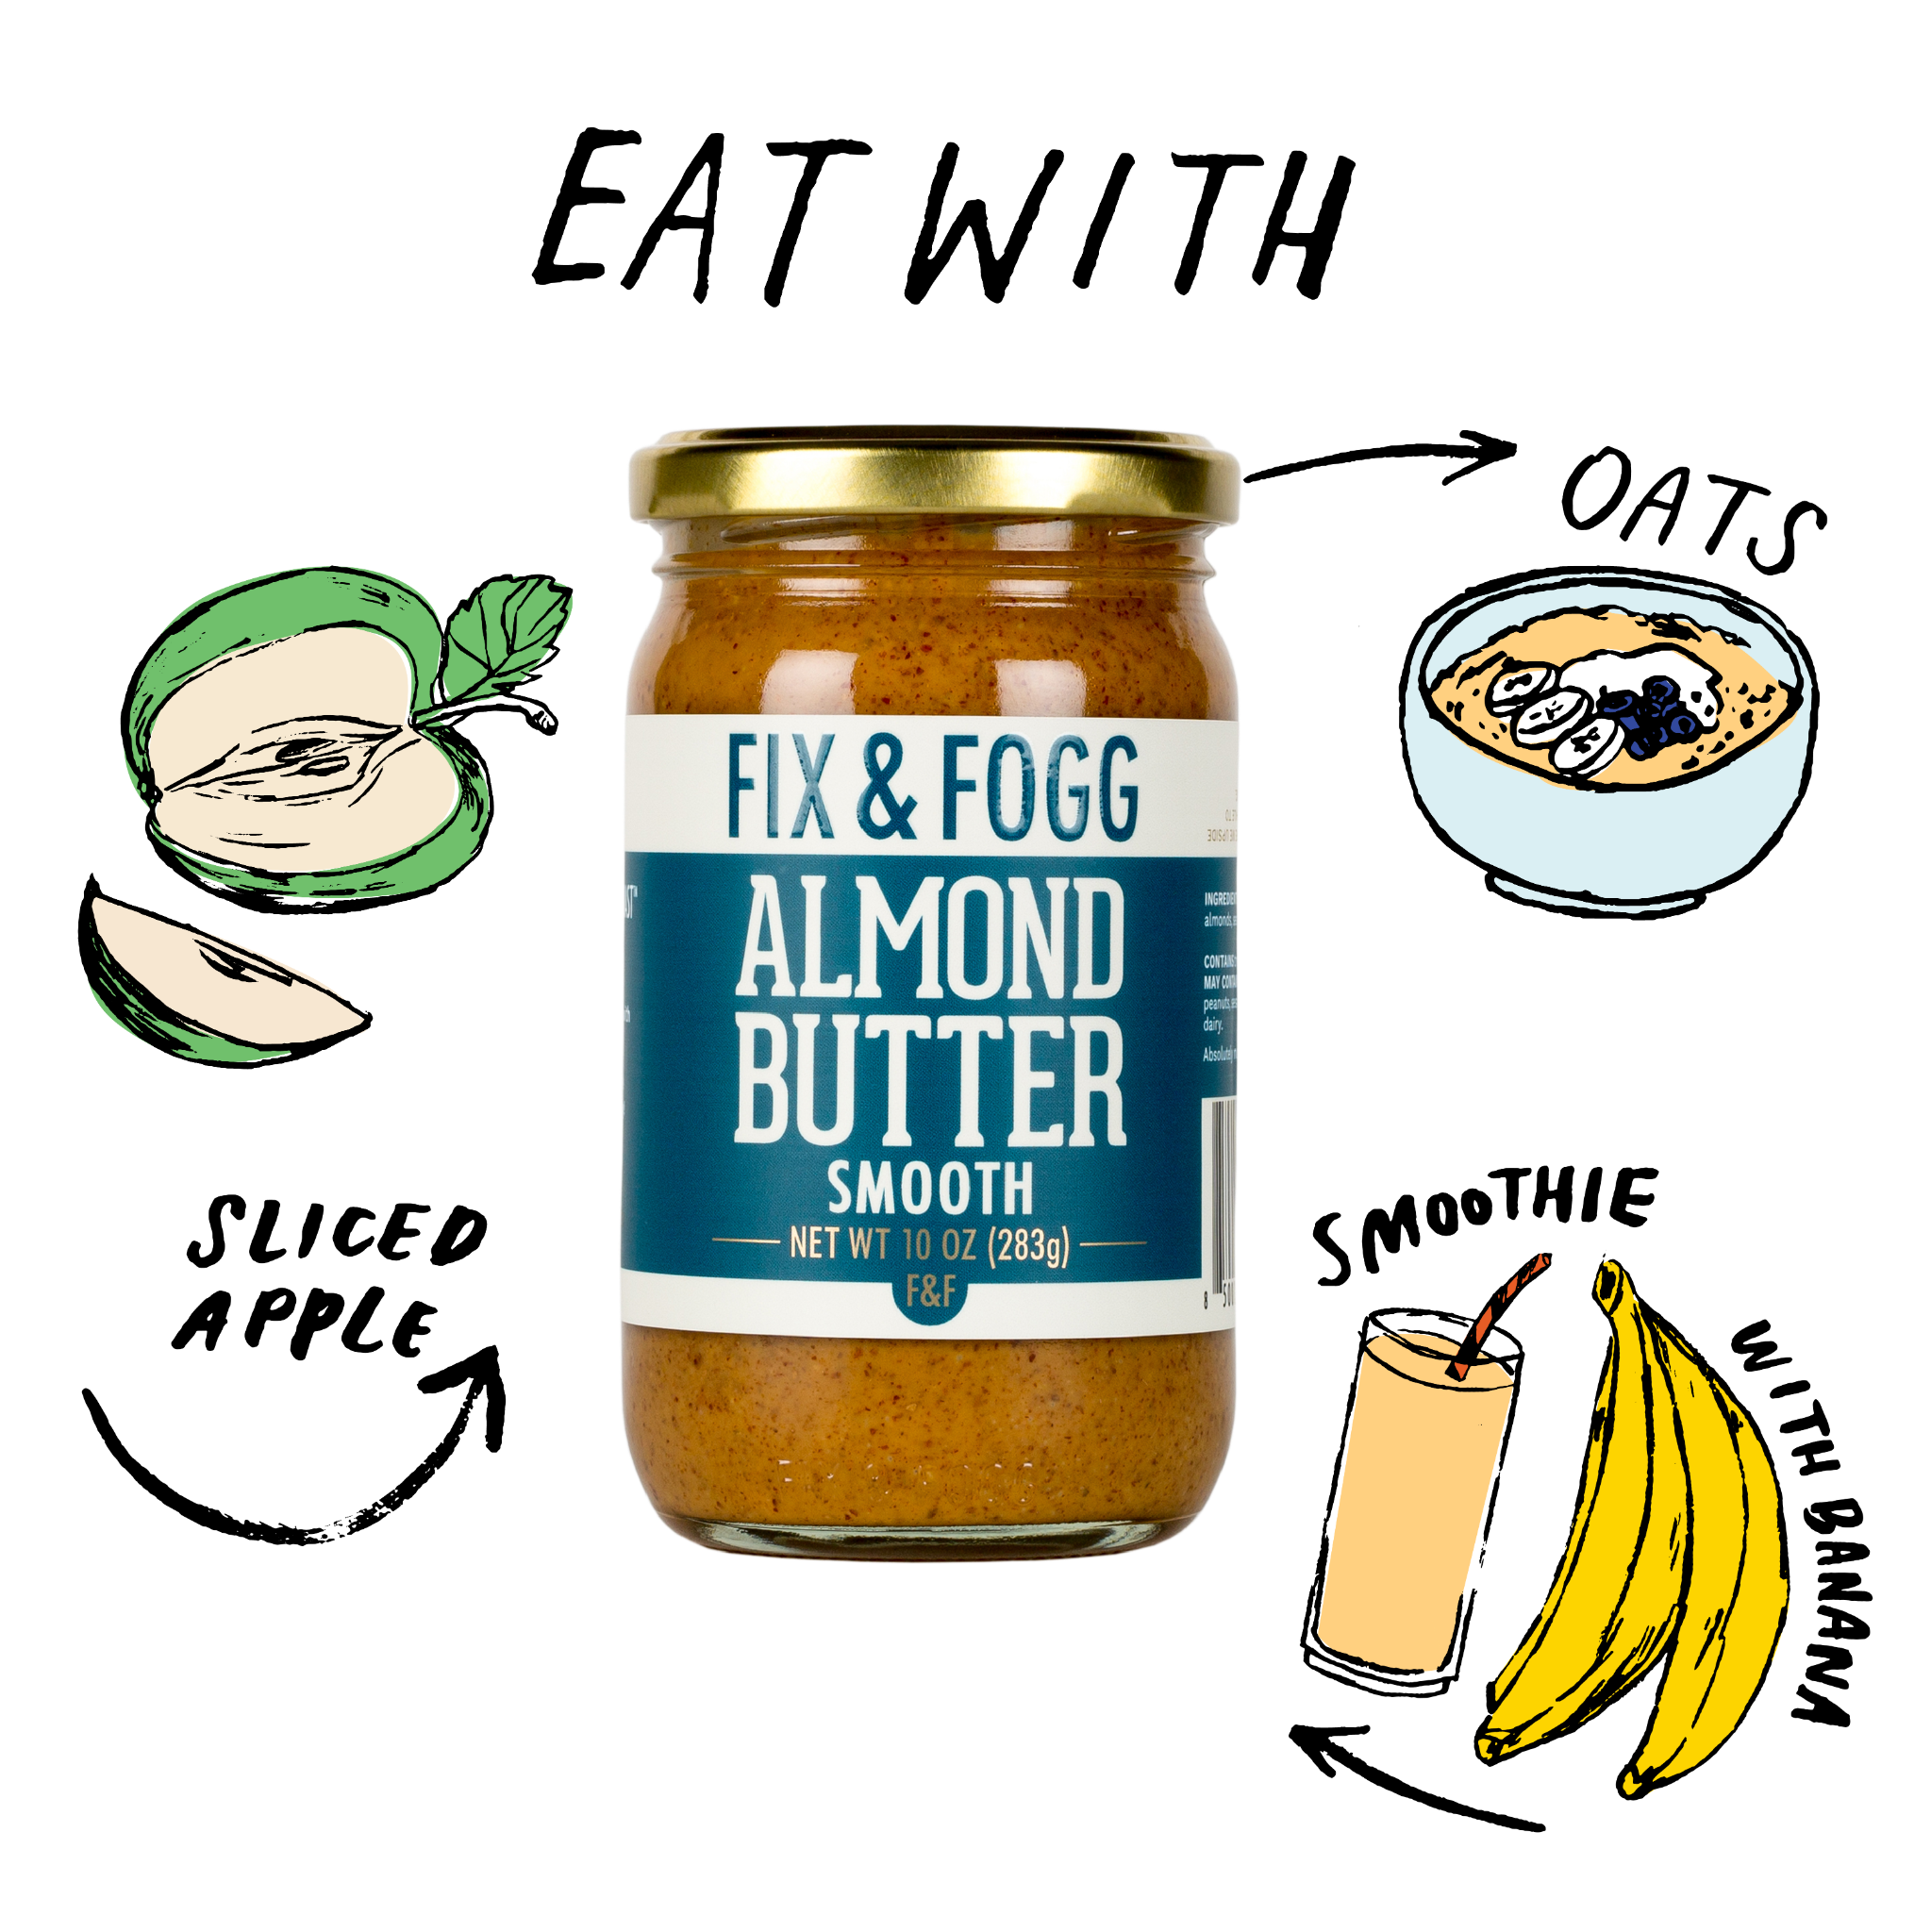 Eat with Smooth Almond